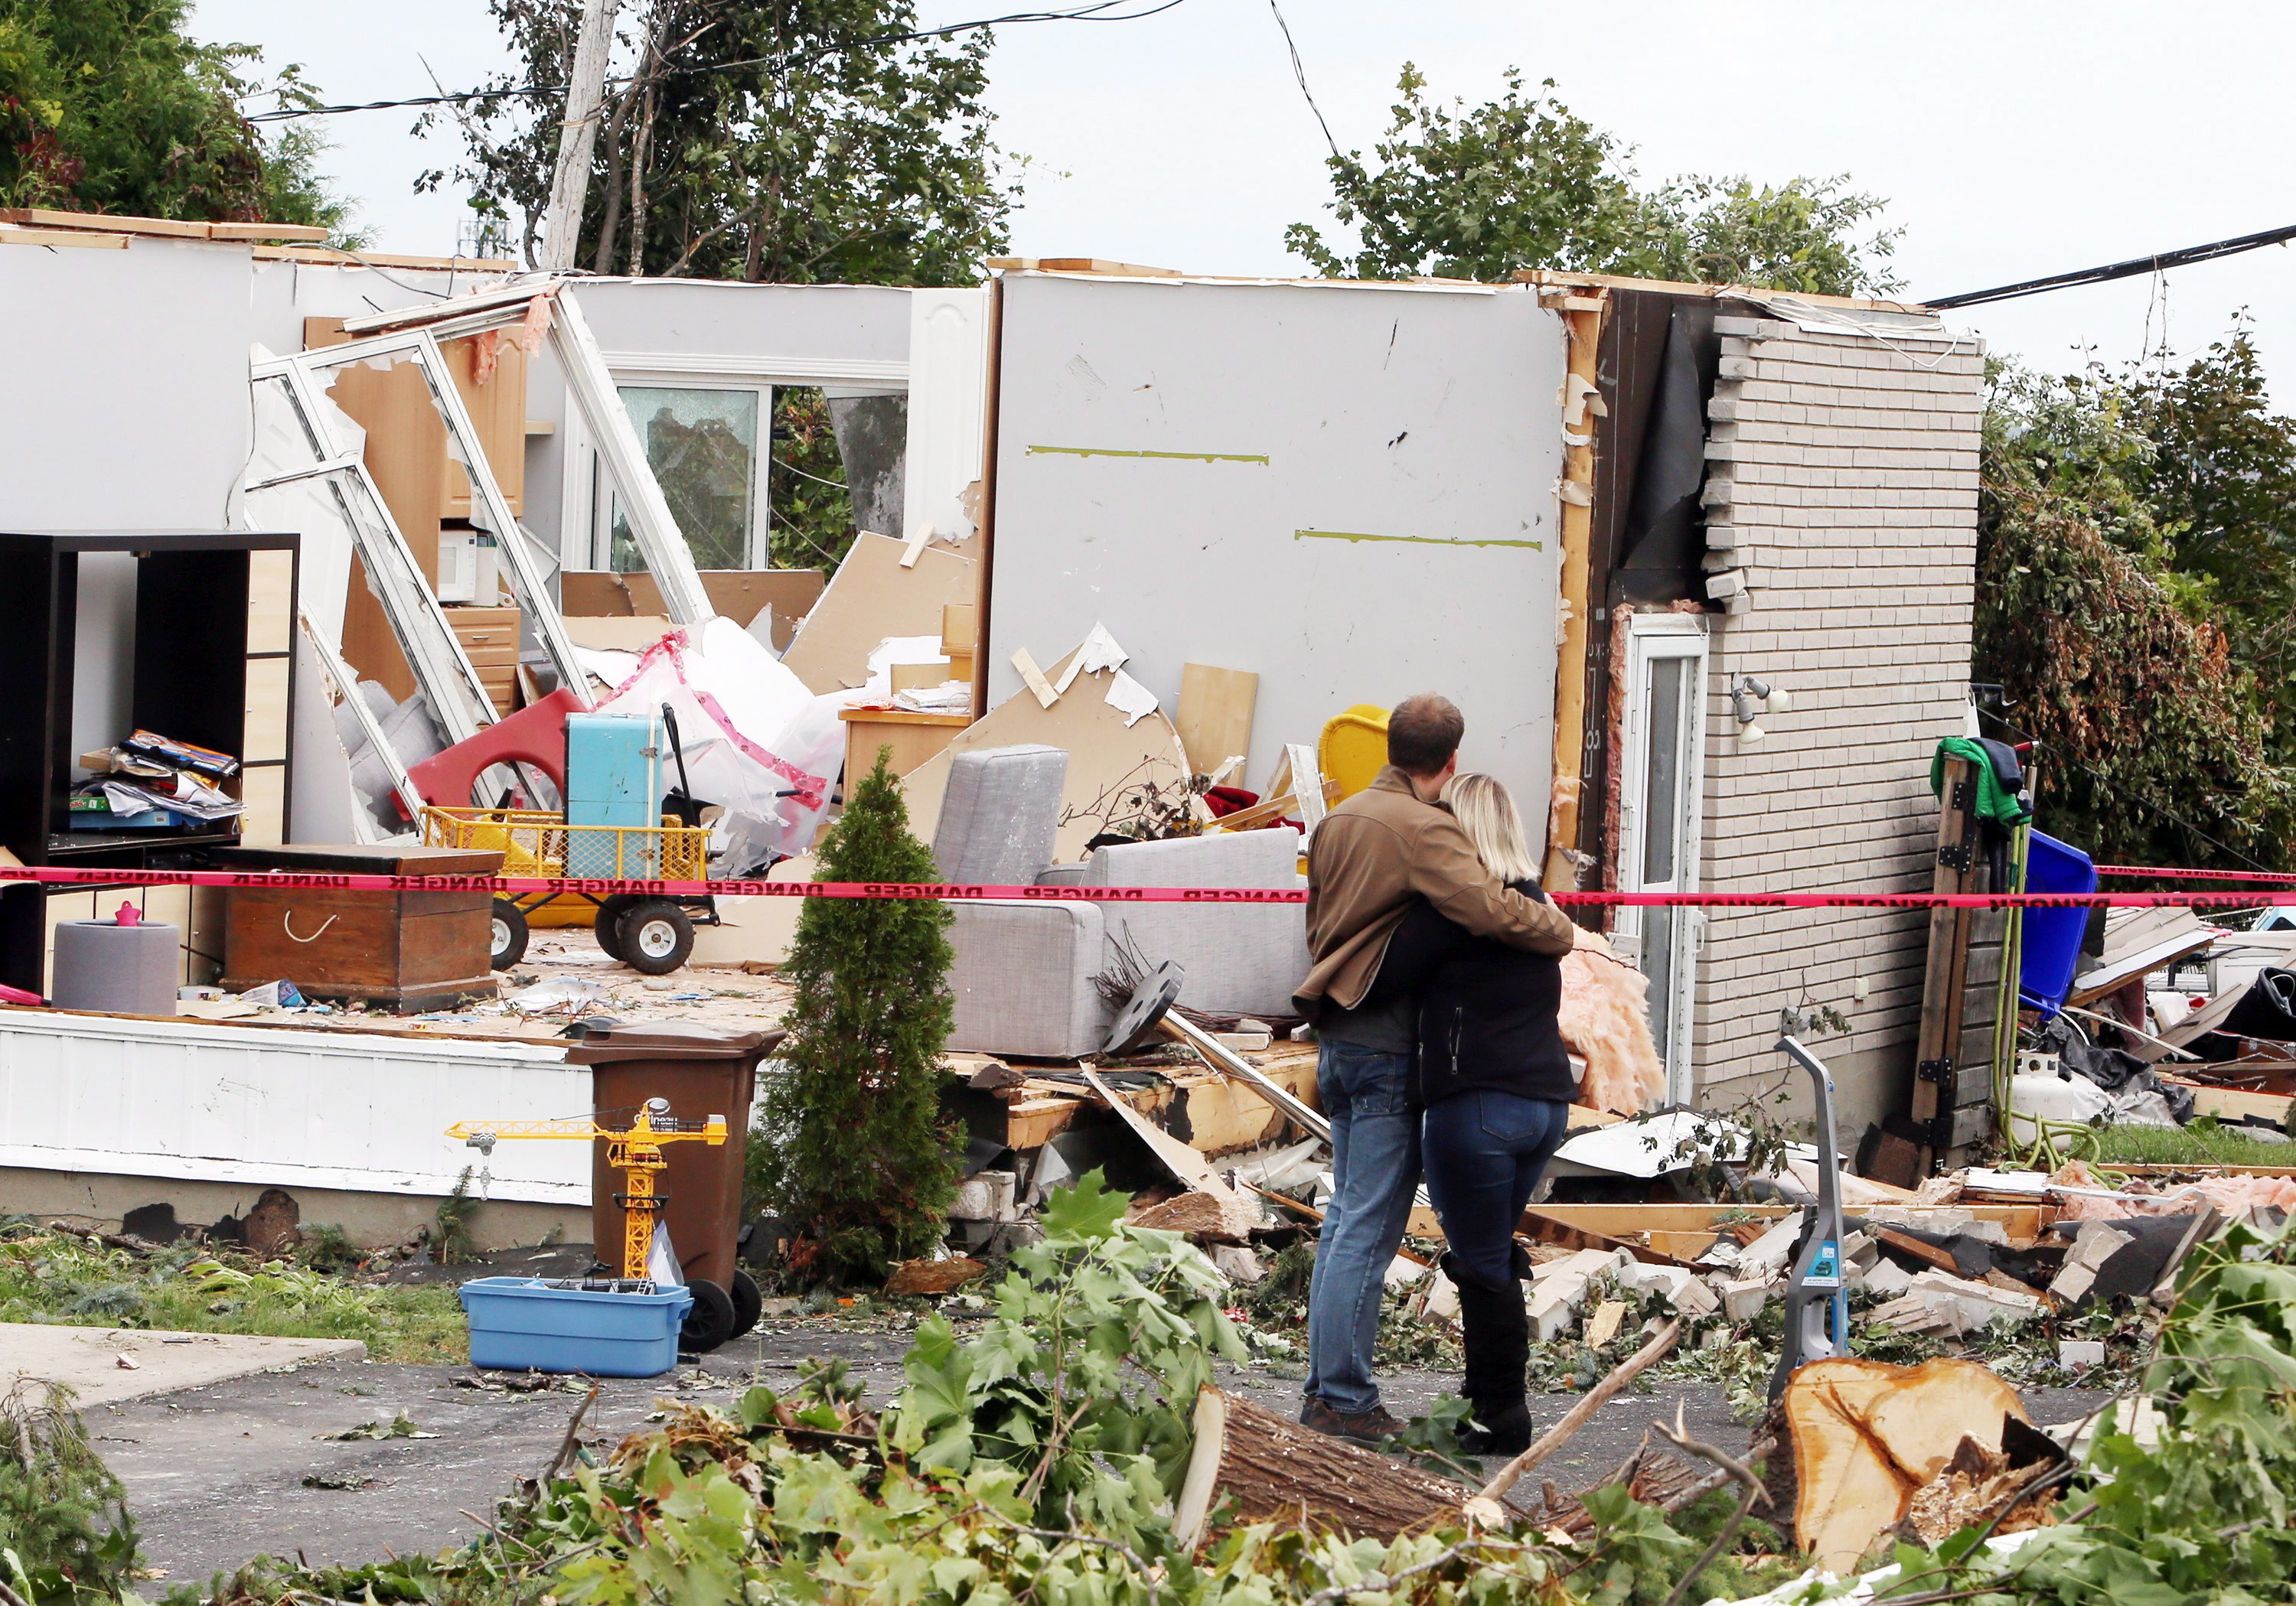 A man and woman embrace as they survey the damage to a home in Gatineau on Sept. 23. (Fred Chartrand/Canadian Press)